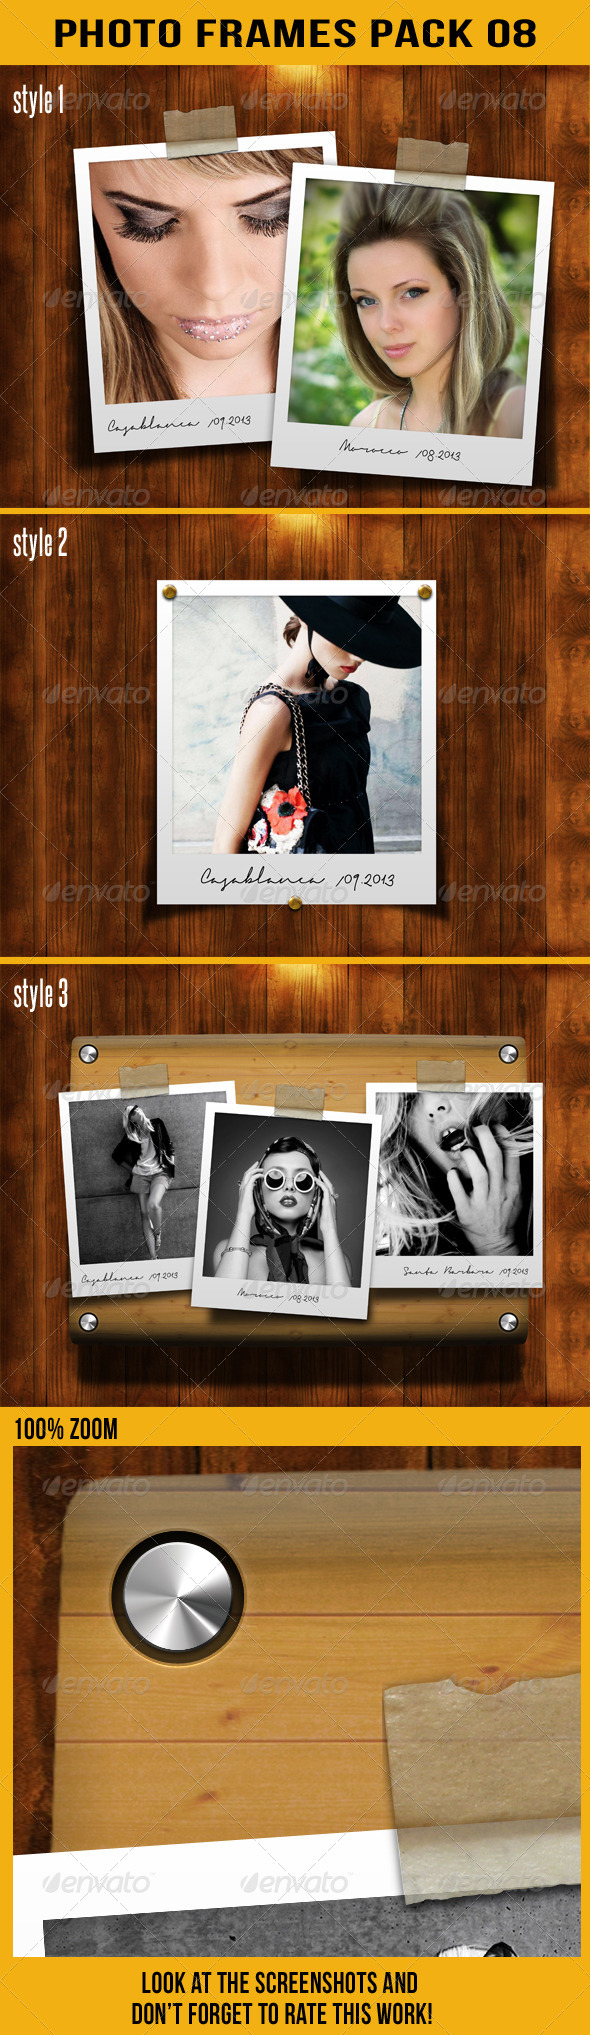 Photo Frames Pack 08 - Artistic Photo Templates